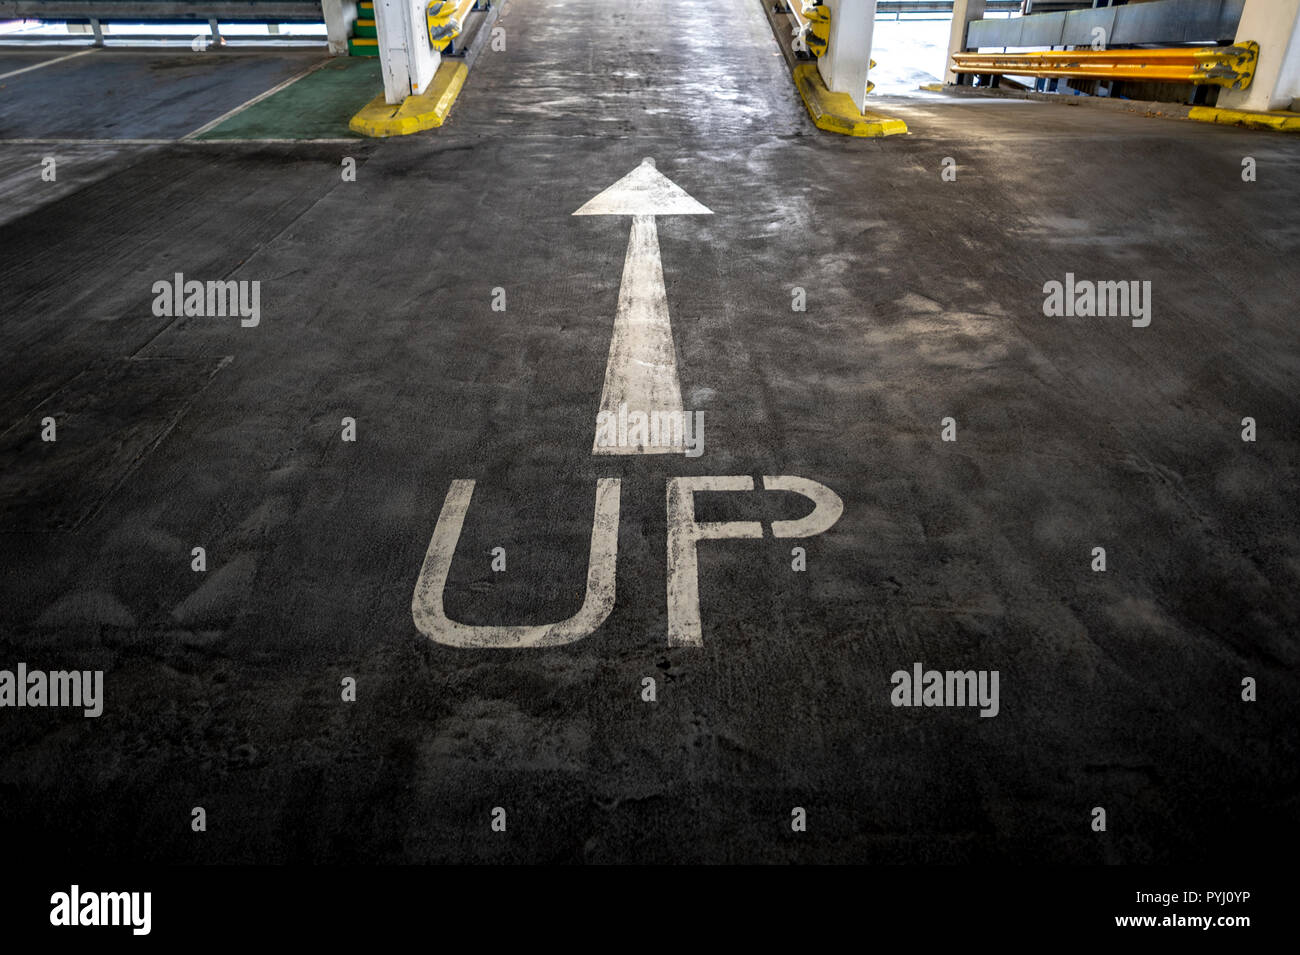 Up and arrow painted on tarmac in a multistory garage - Stock Image